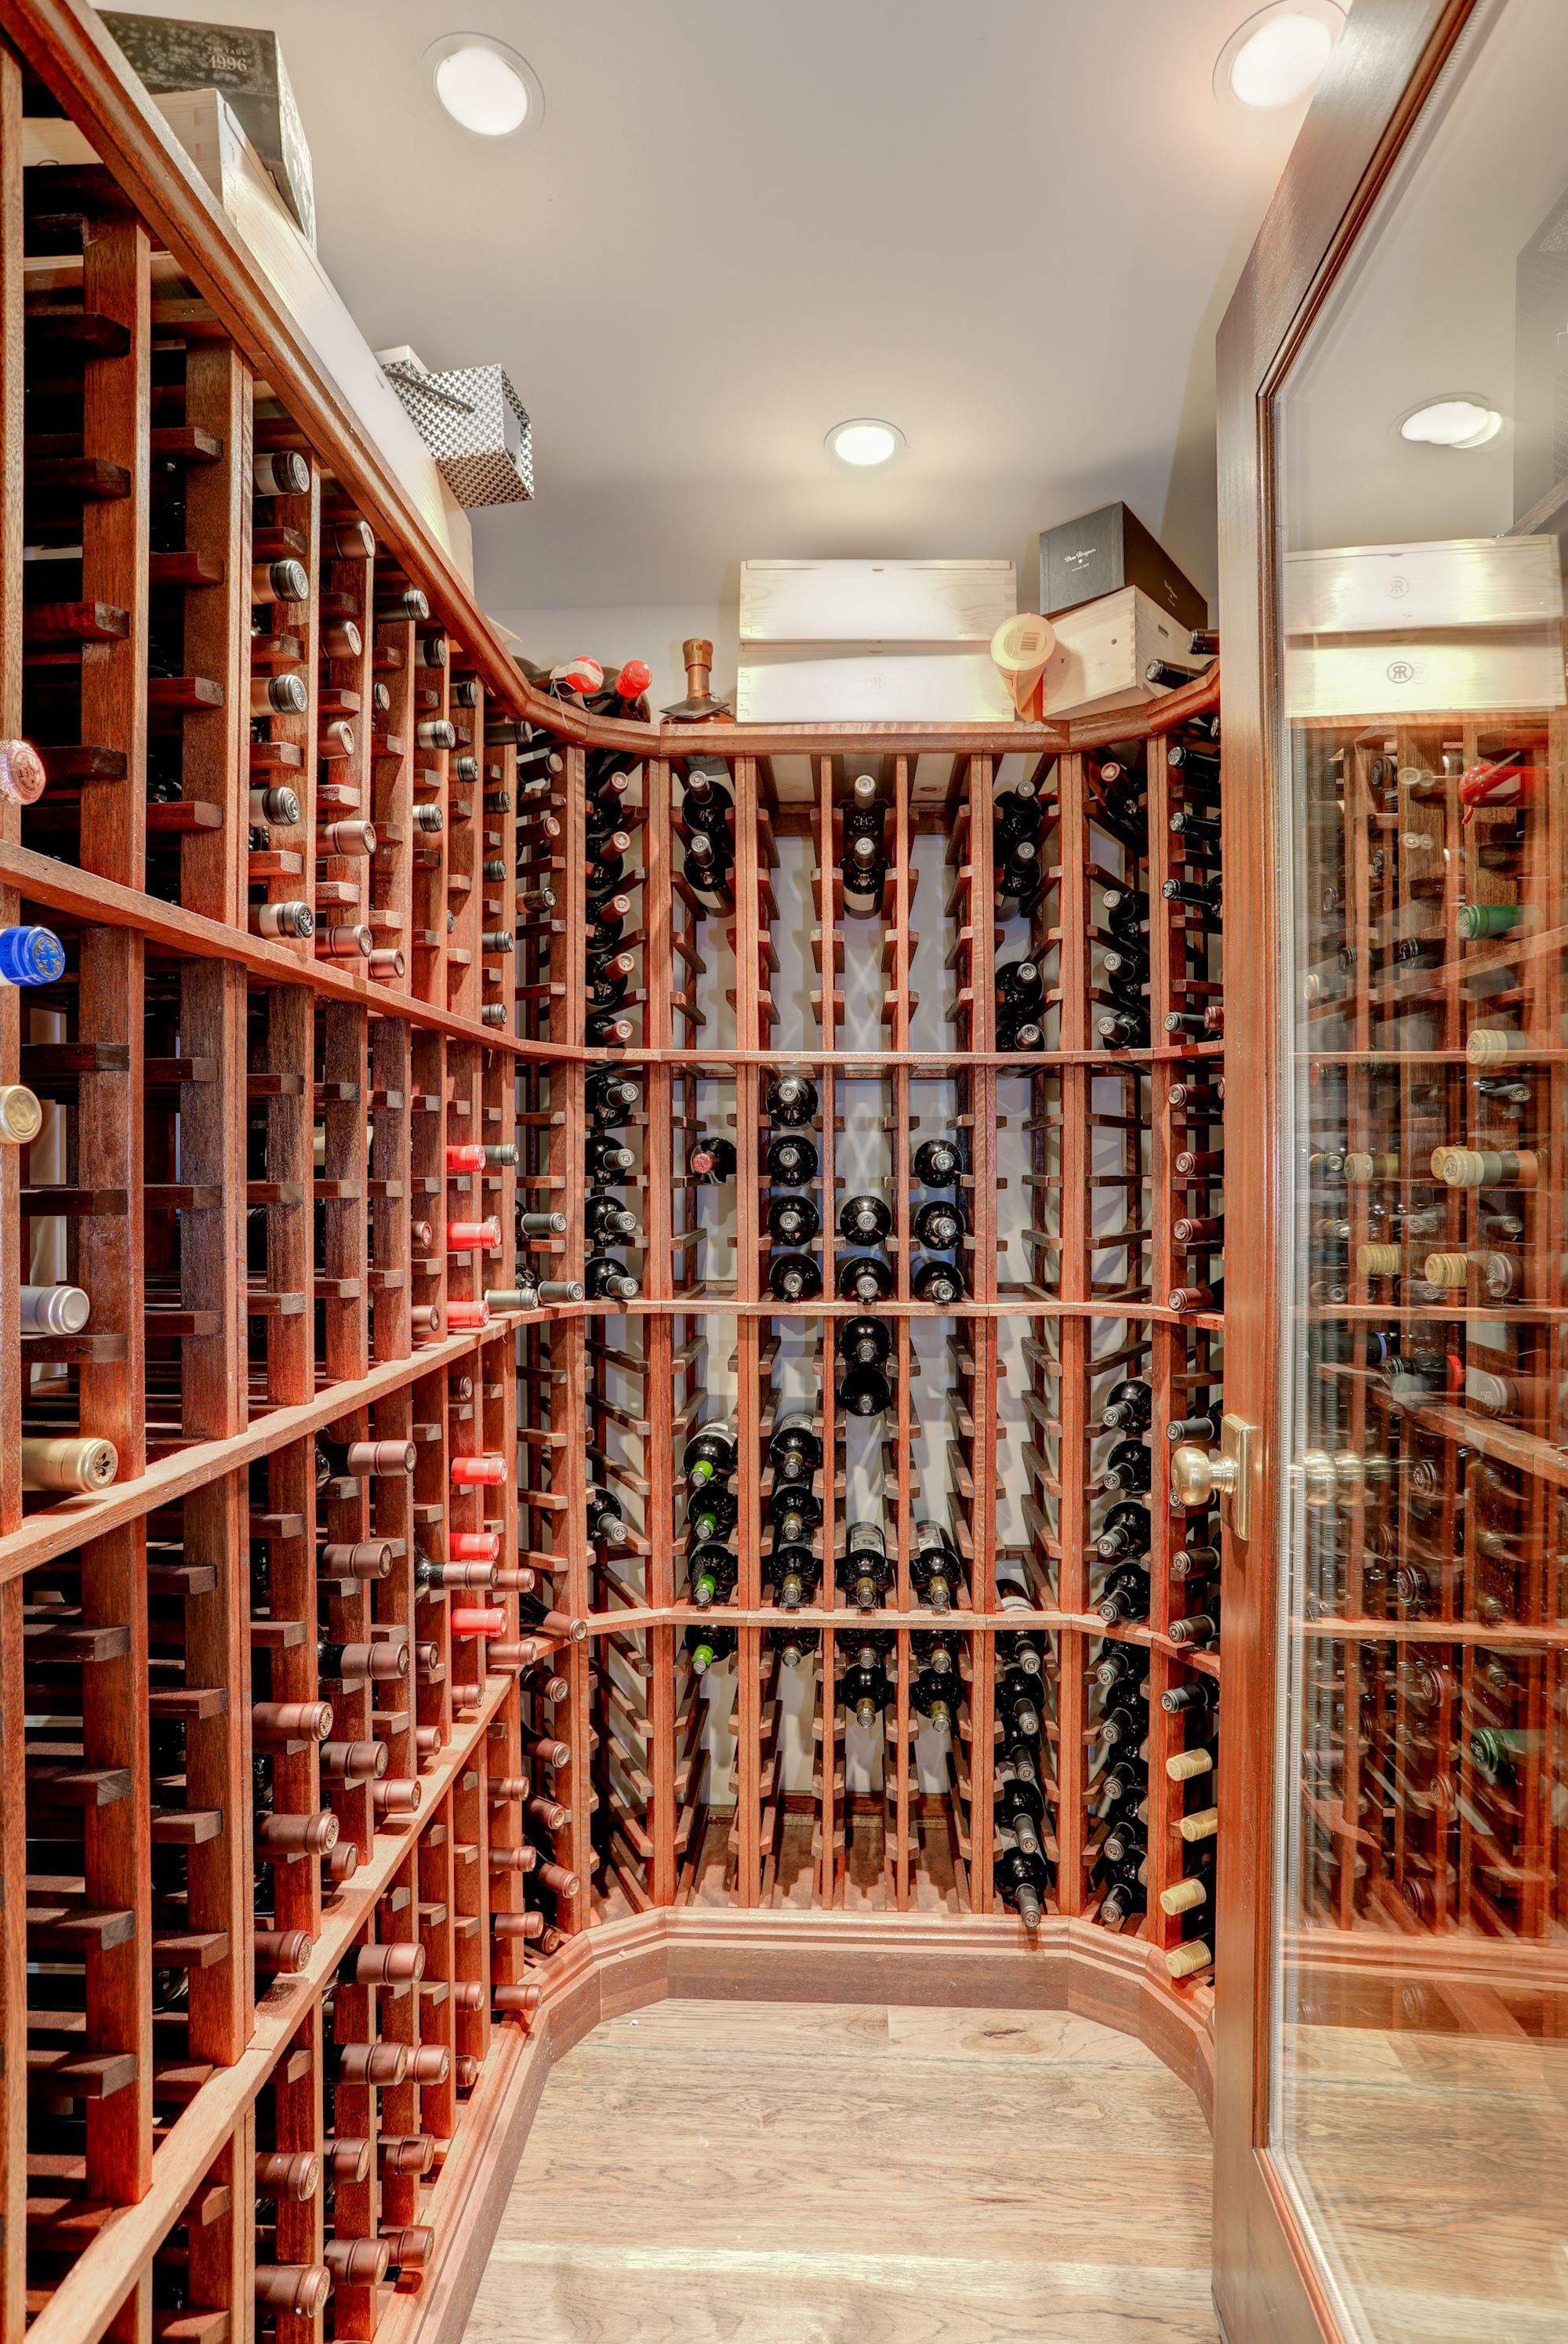 The finished basement includes a climate-controlled wine cellar that can hold up to 500 bottles. (Image: Courtesy HomeVisit)<p></p>